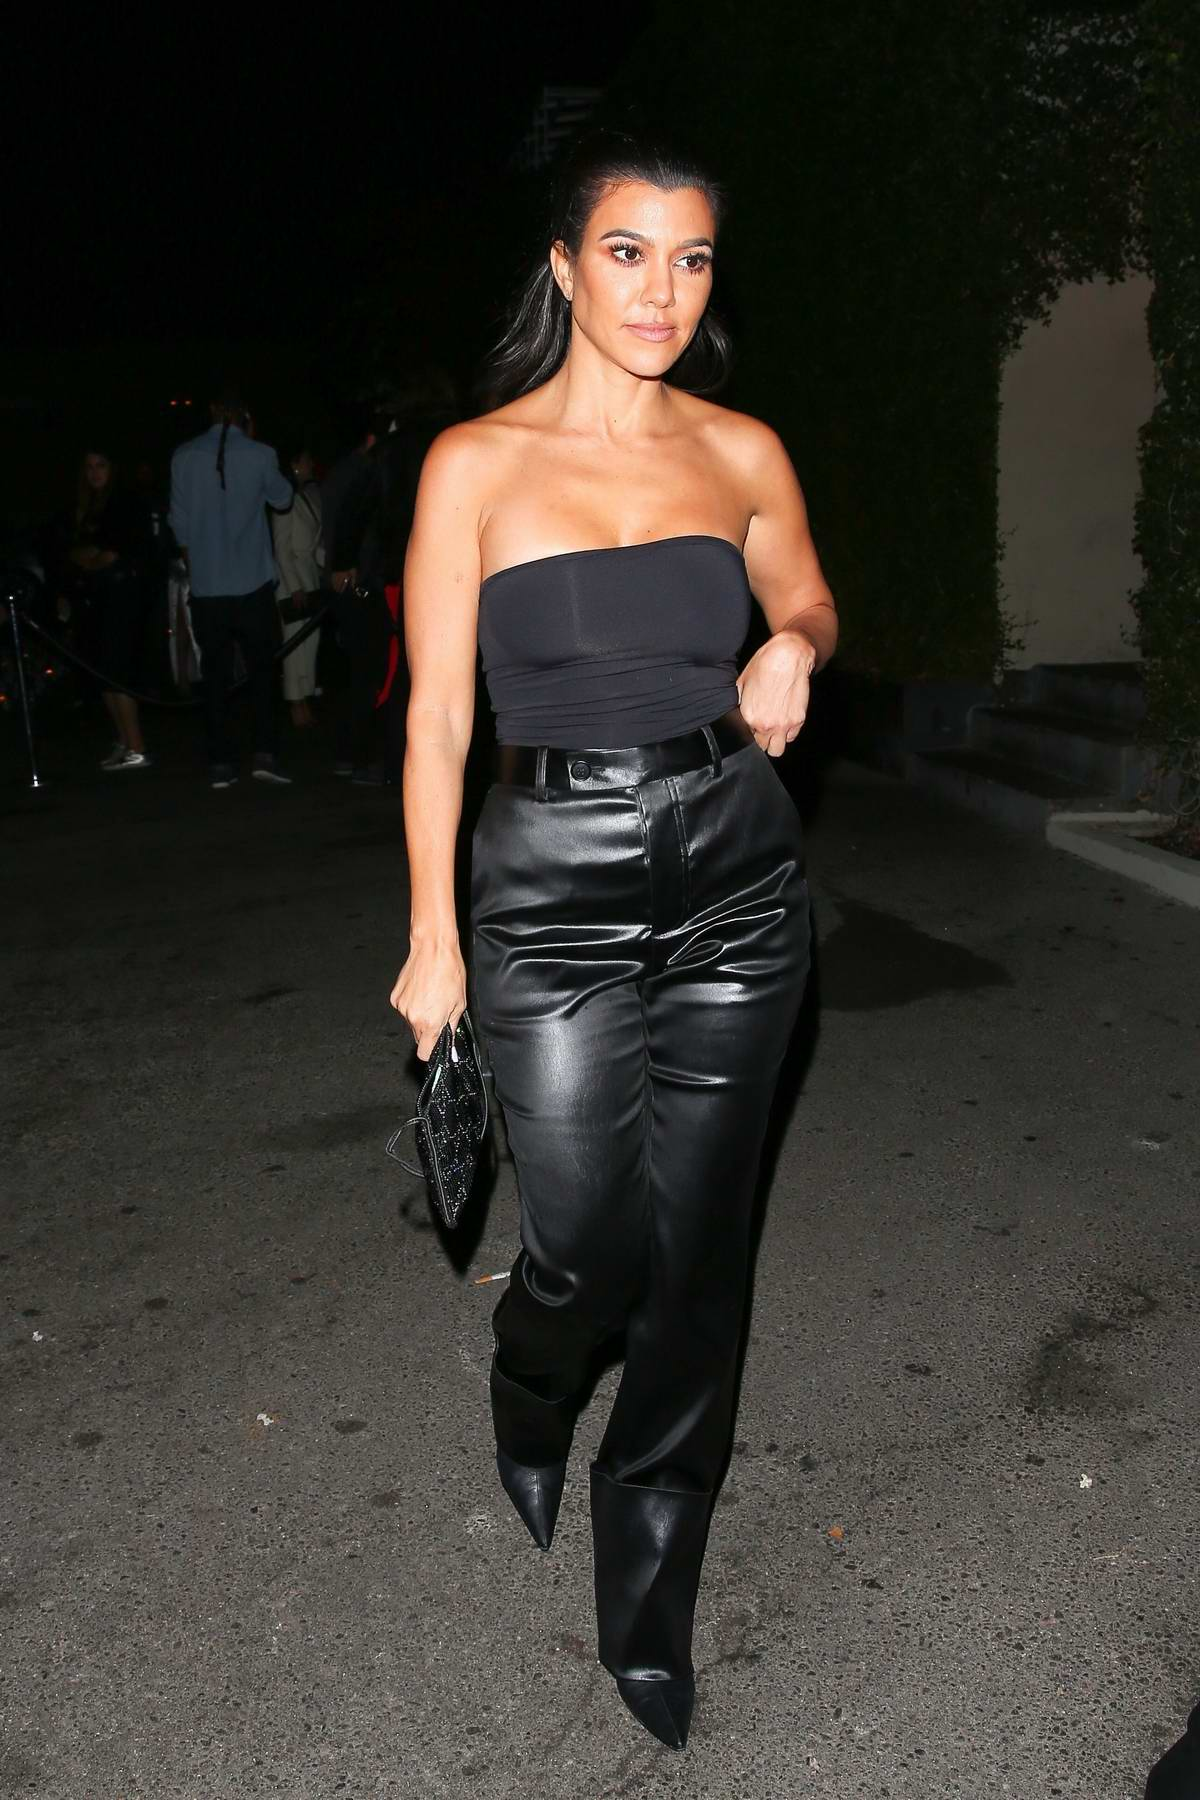 Kourtney Kardashian rocks a black tube top and leather pants at P Diddy's 49th birthday bash at Ysabel Restaurant in West Hollywood, Los Angeles